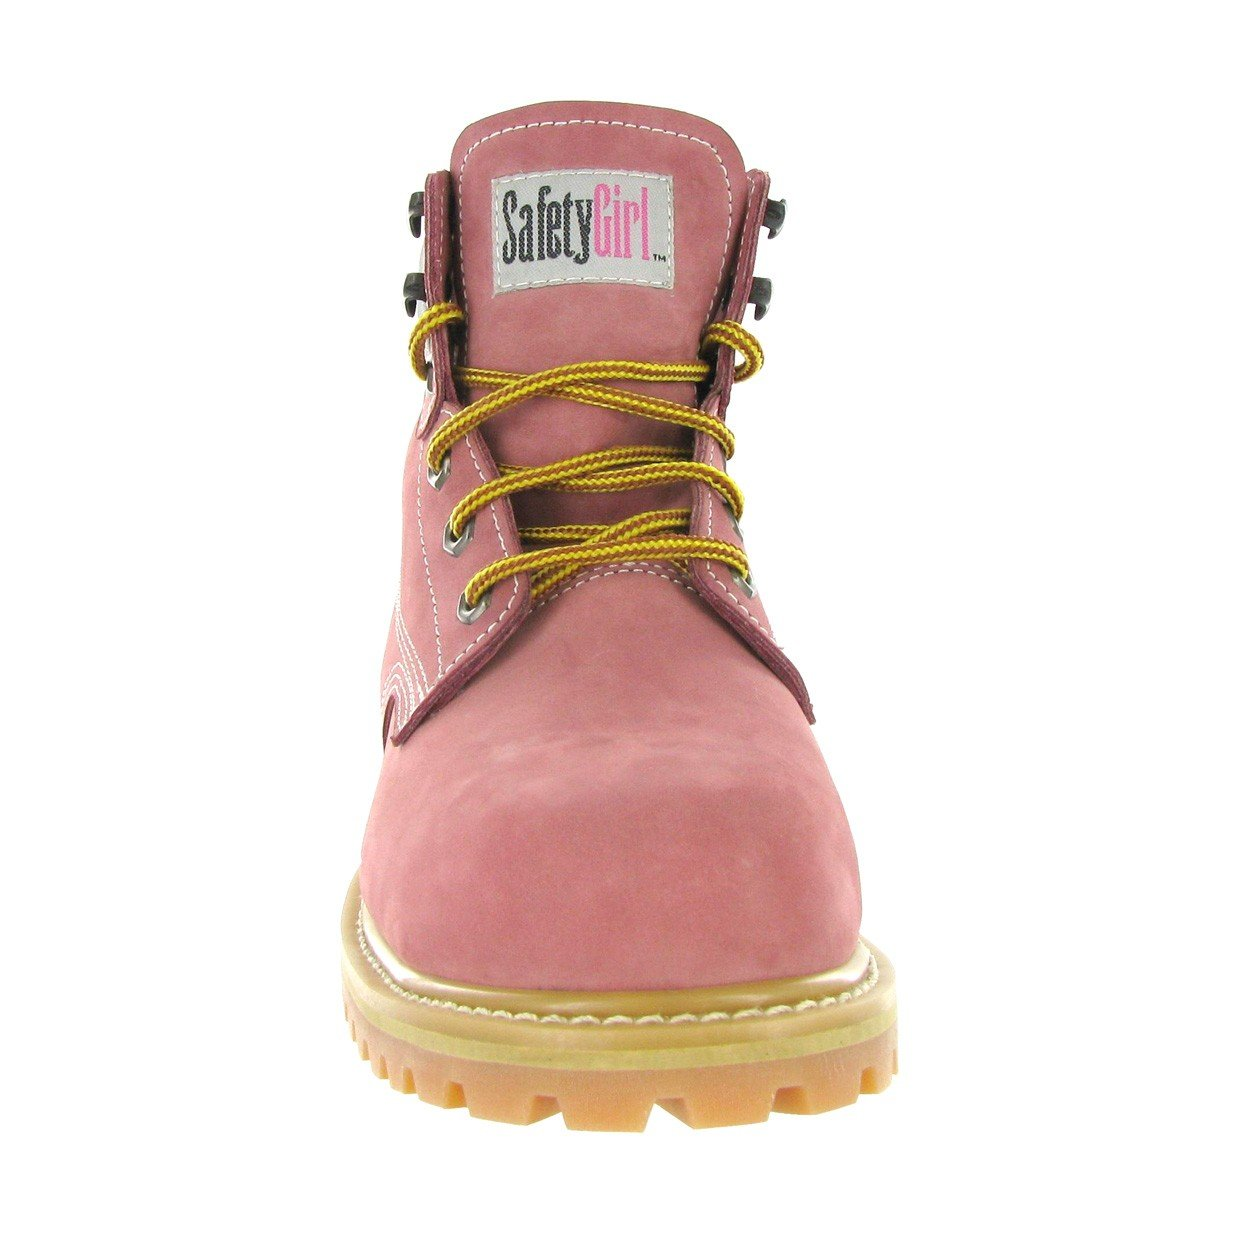 Safety Girl GS003-Lt Pink-9M Steel Toe Work Boots - Light Pink - 9M, English, Capacity, Volume, Leather, 9M, Pink () by Safety Girl (Image #6)